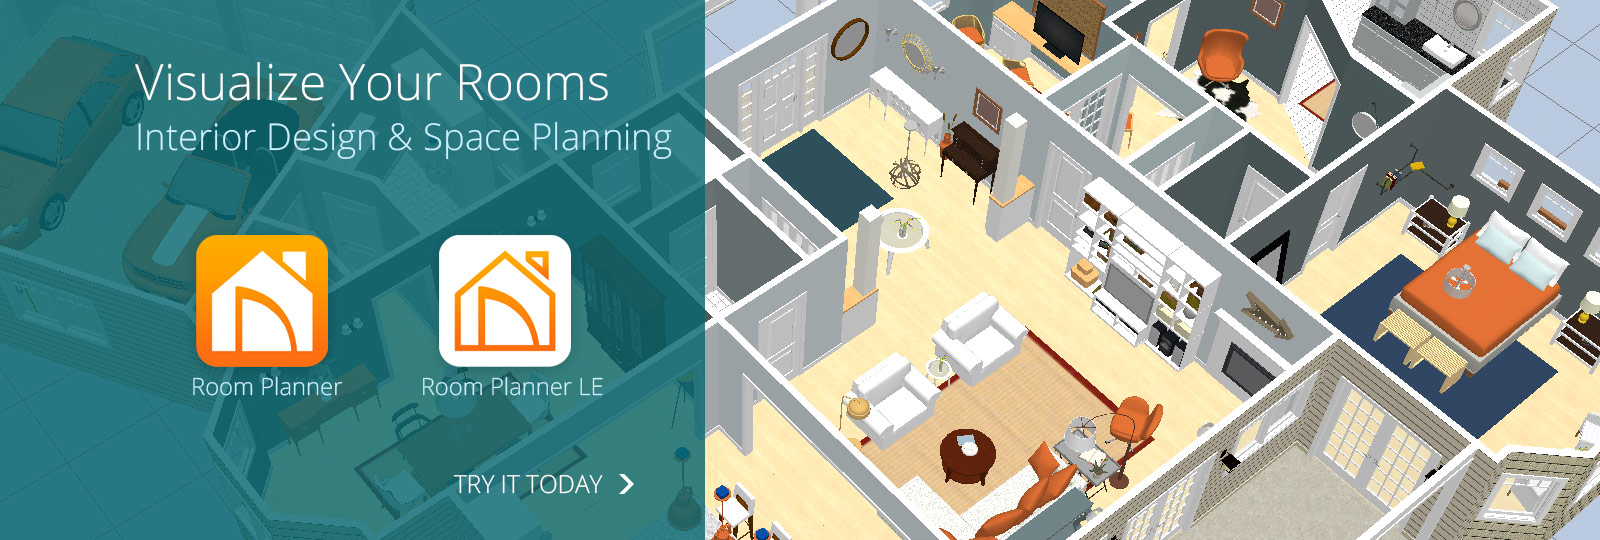 Room architecture design software RoomSketcher Home Design